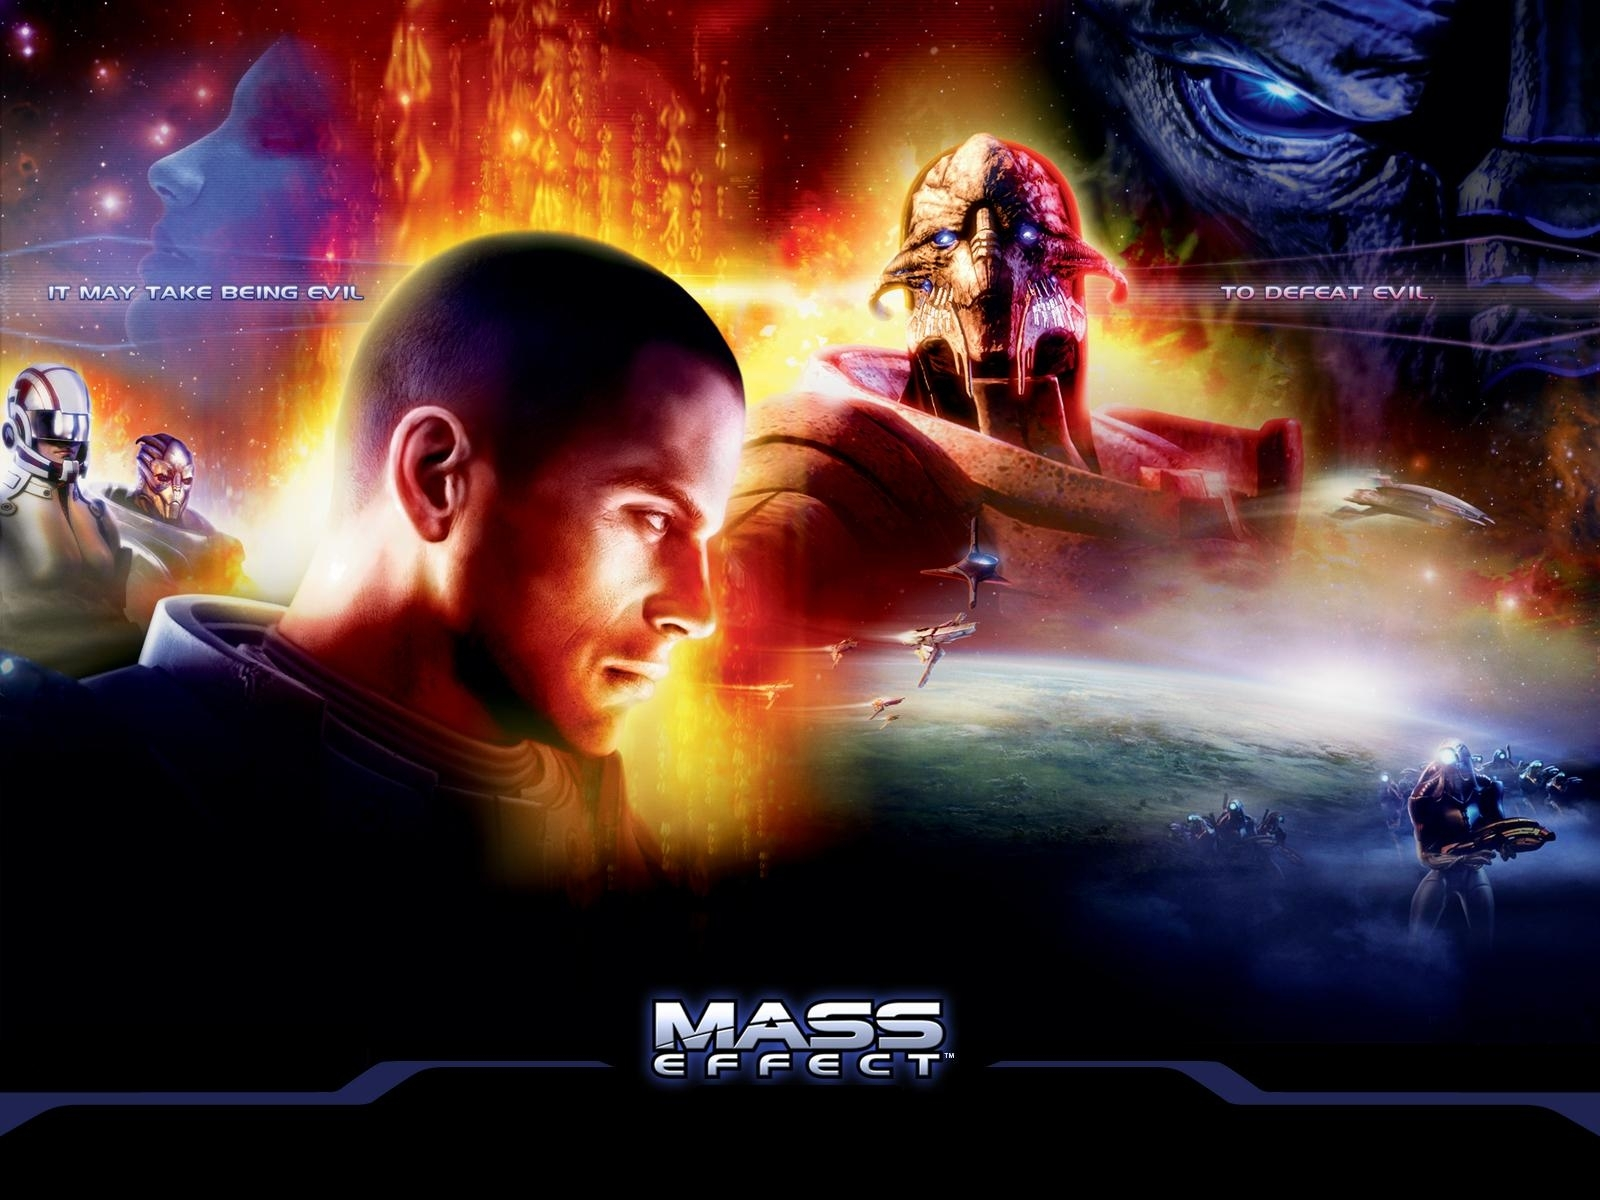 mass effect wallpaper and background image | 1600x1200 | id:77564